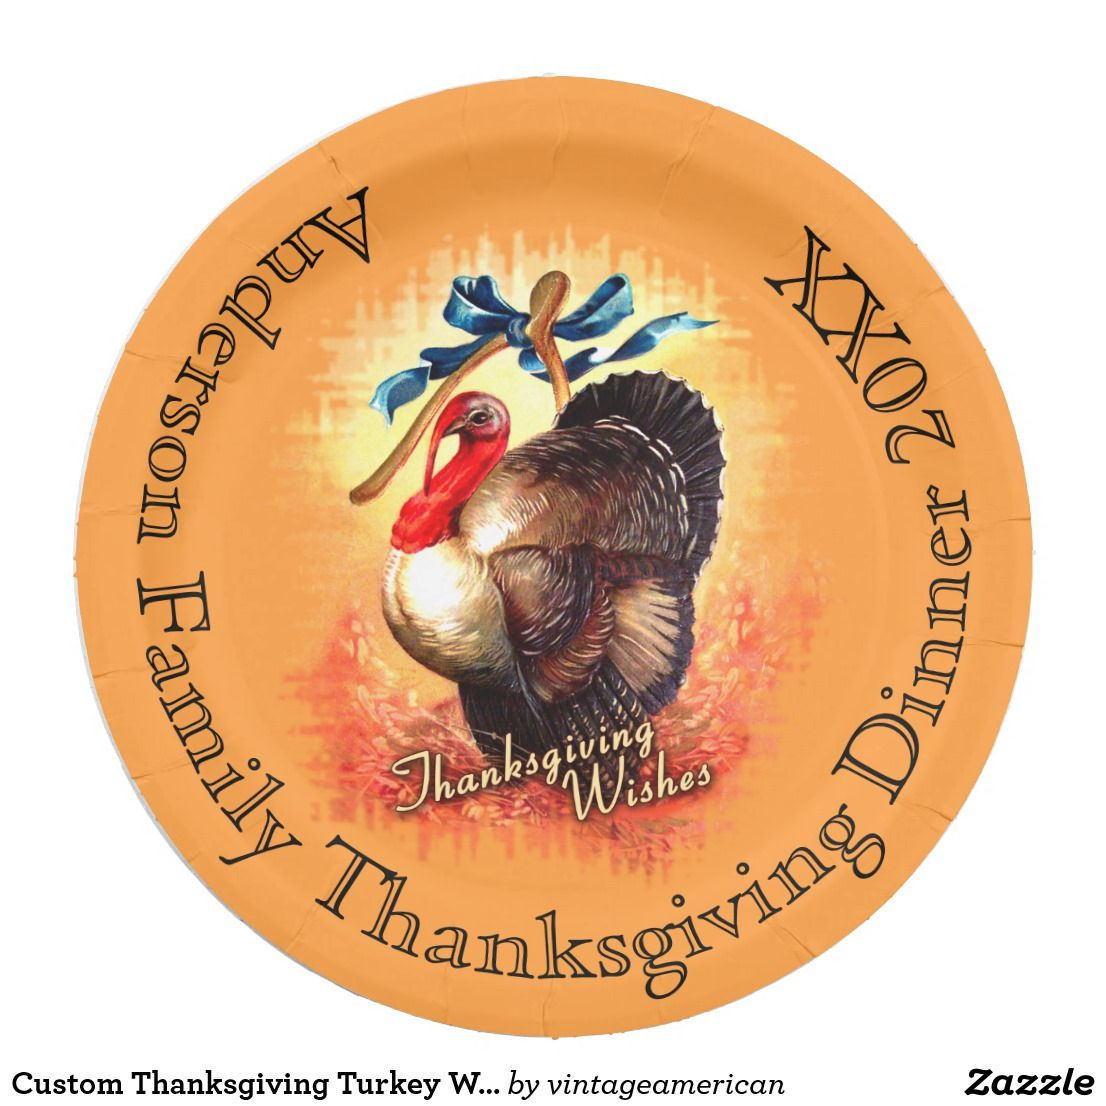 Custom Thanksgiving Turkey Wishes Paper Plates  sc 1 st  Pinterest & Custom Thanksgiving Turkey Wishes Paper Plates | Vintage American ...